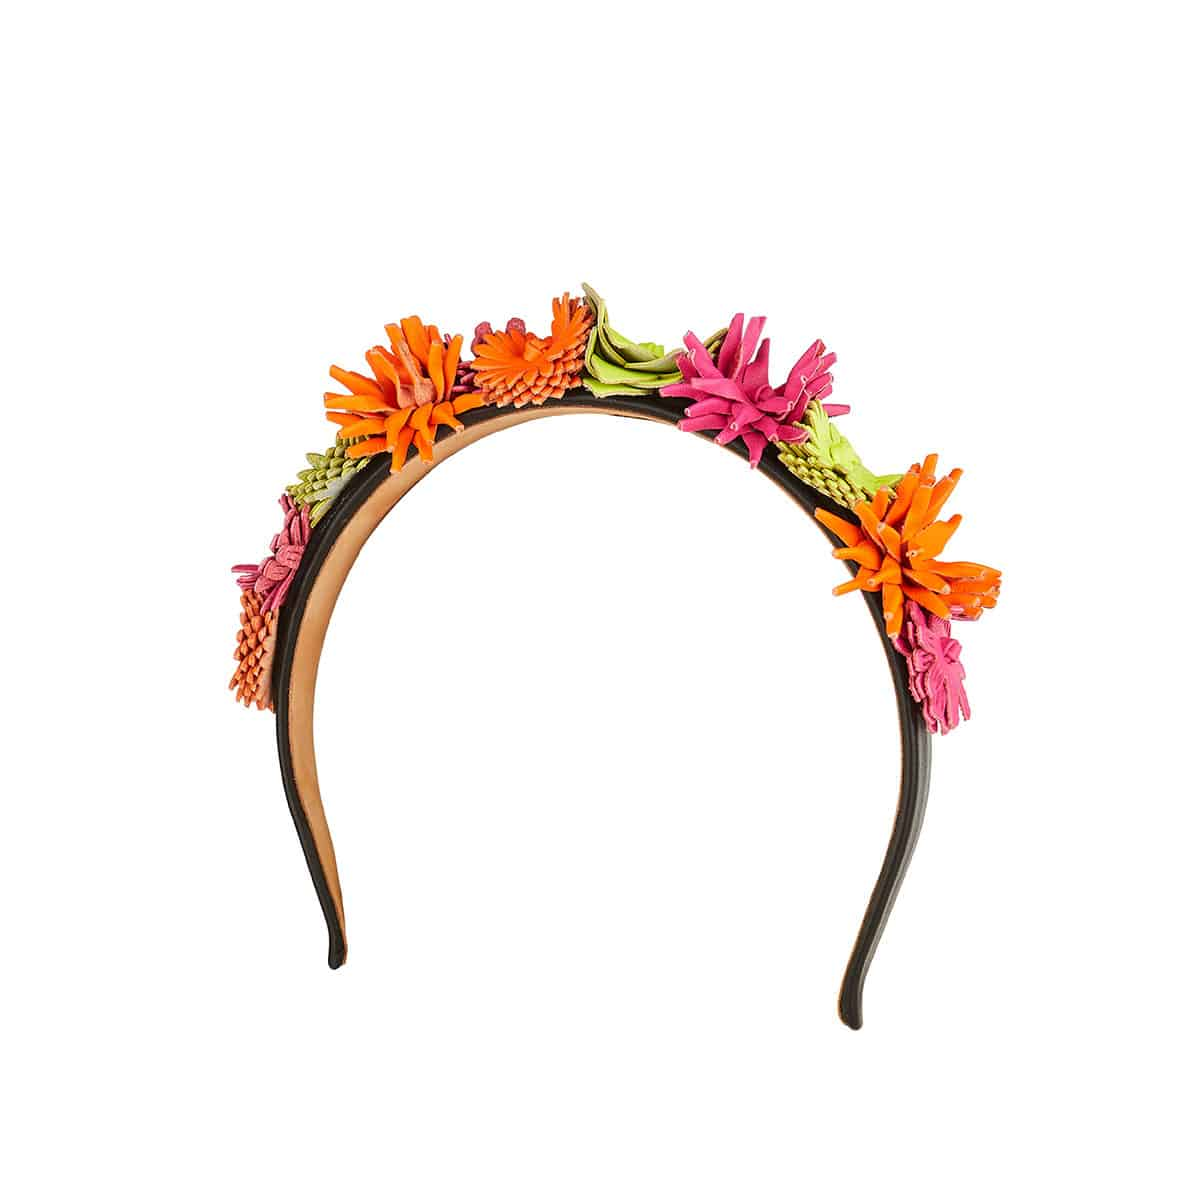 Flower-embellished headband